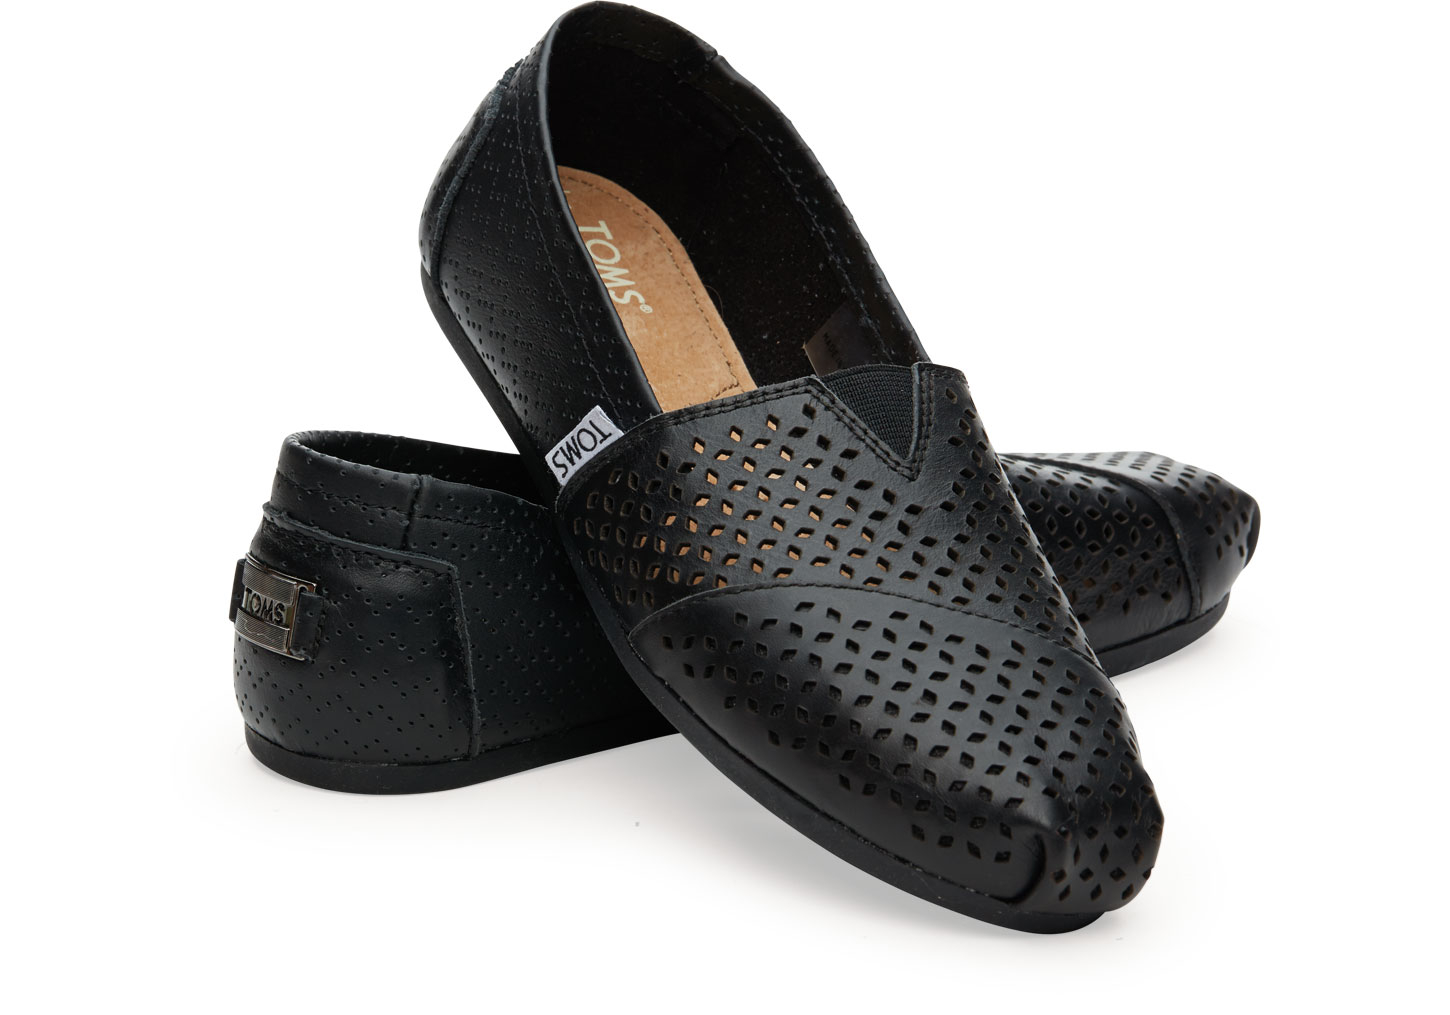 cd79b2c02d5 TOMS Black Leather Perforated Women s Classics in Black - Lyst